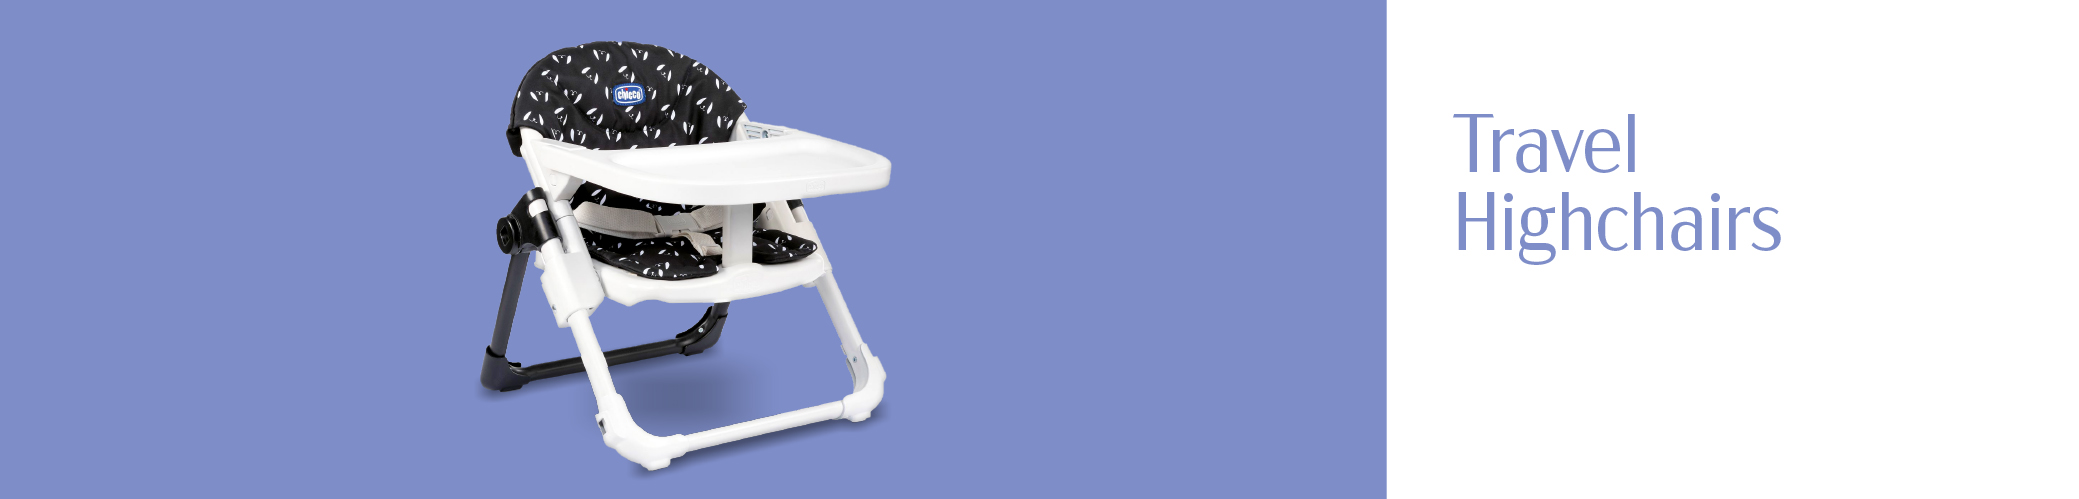 compact travel highchairs